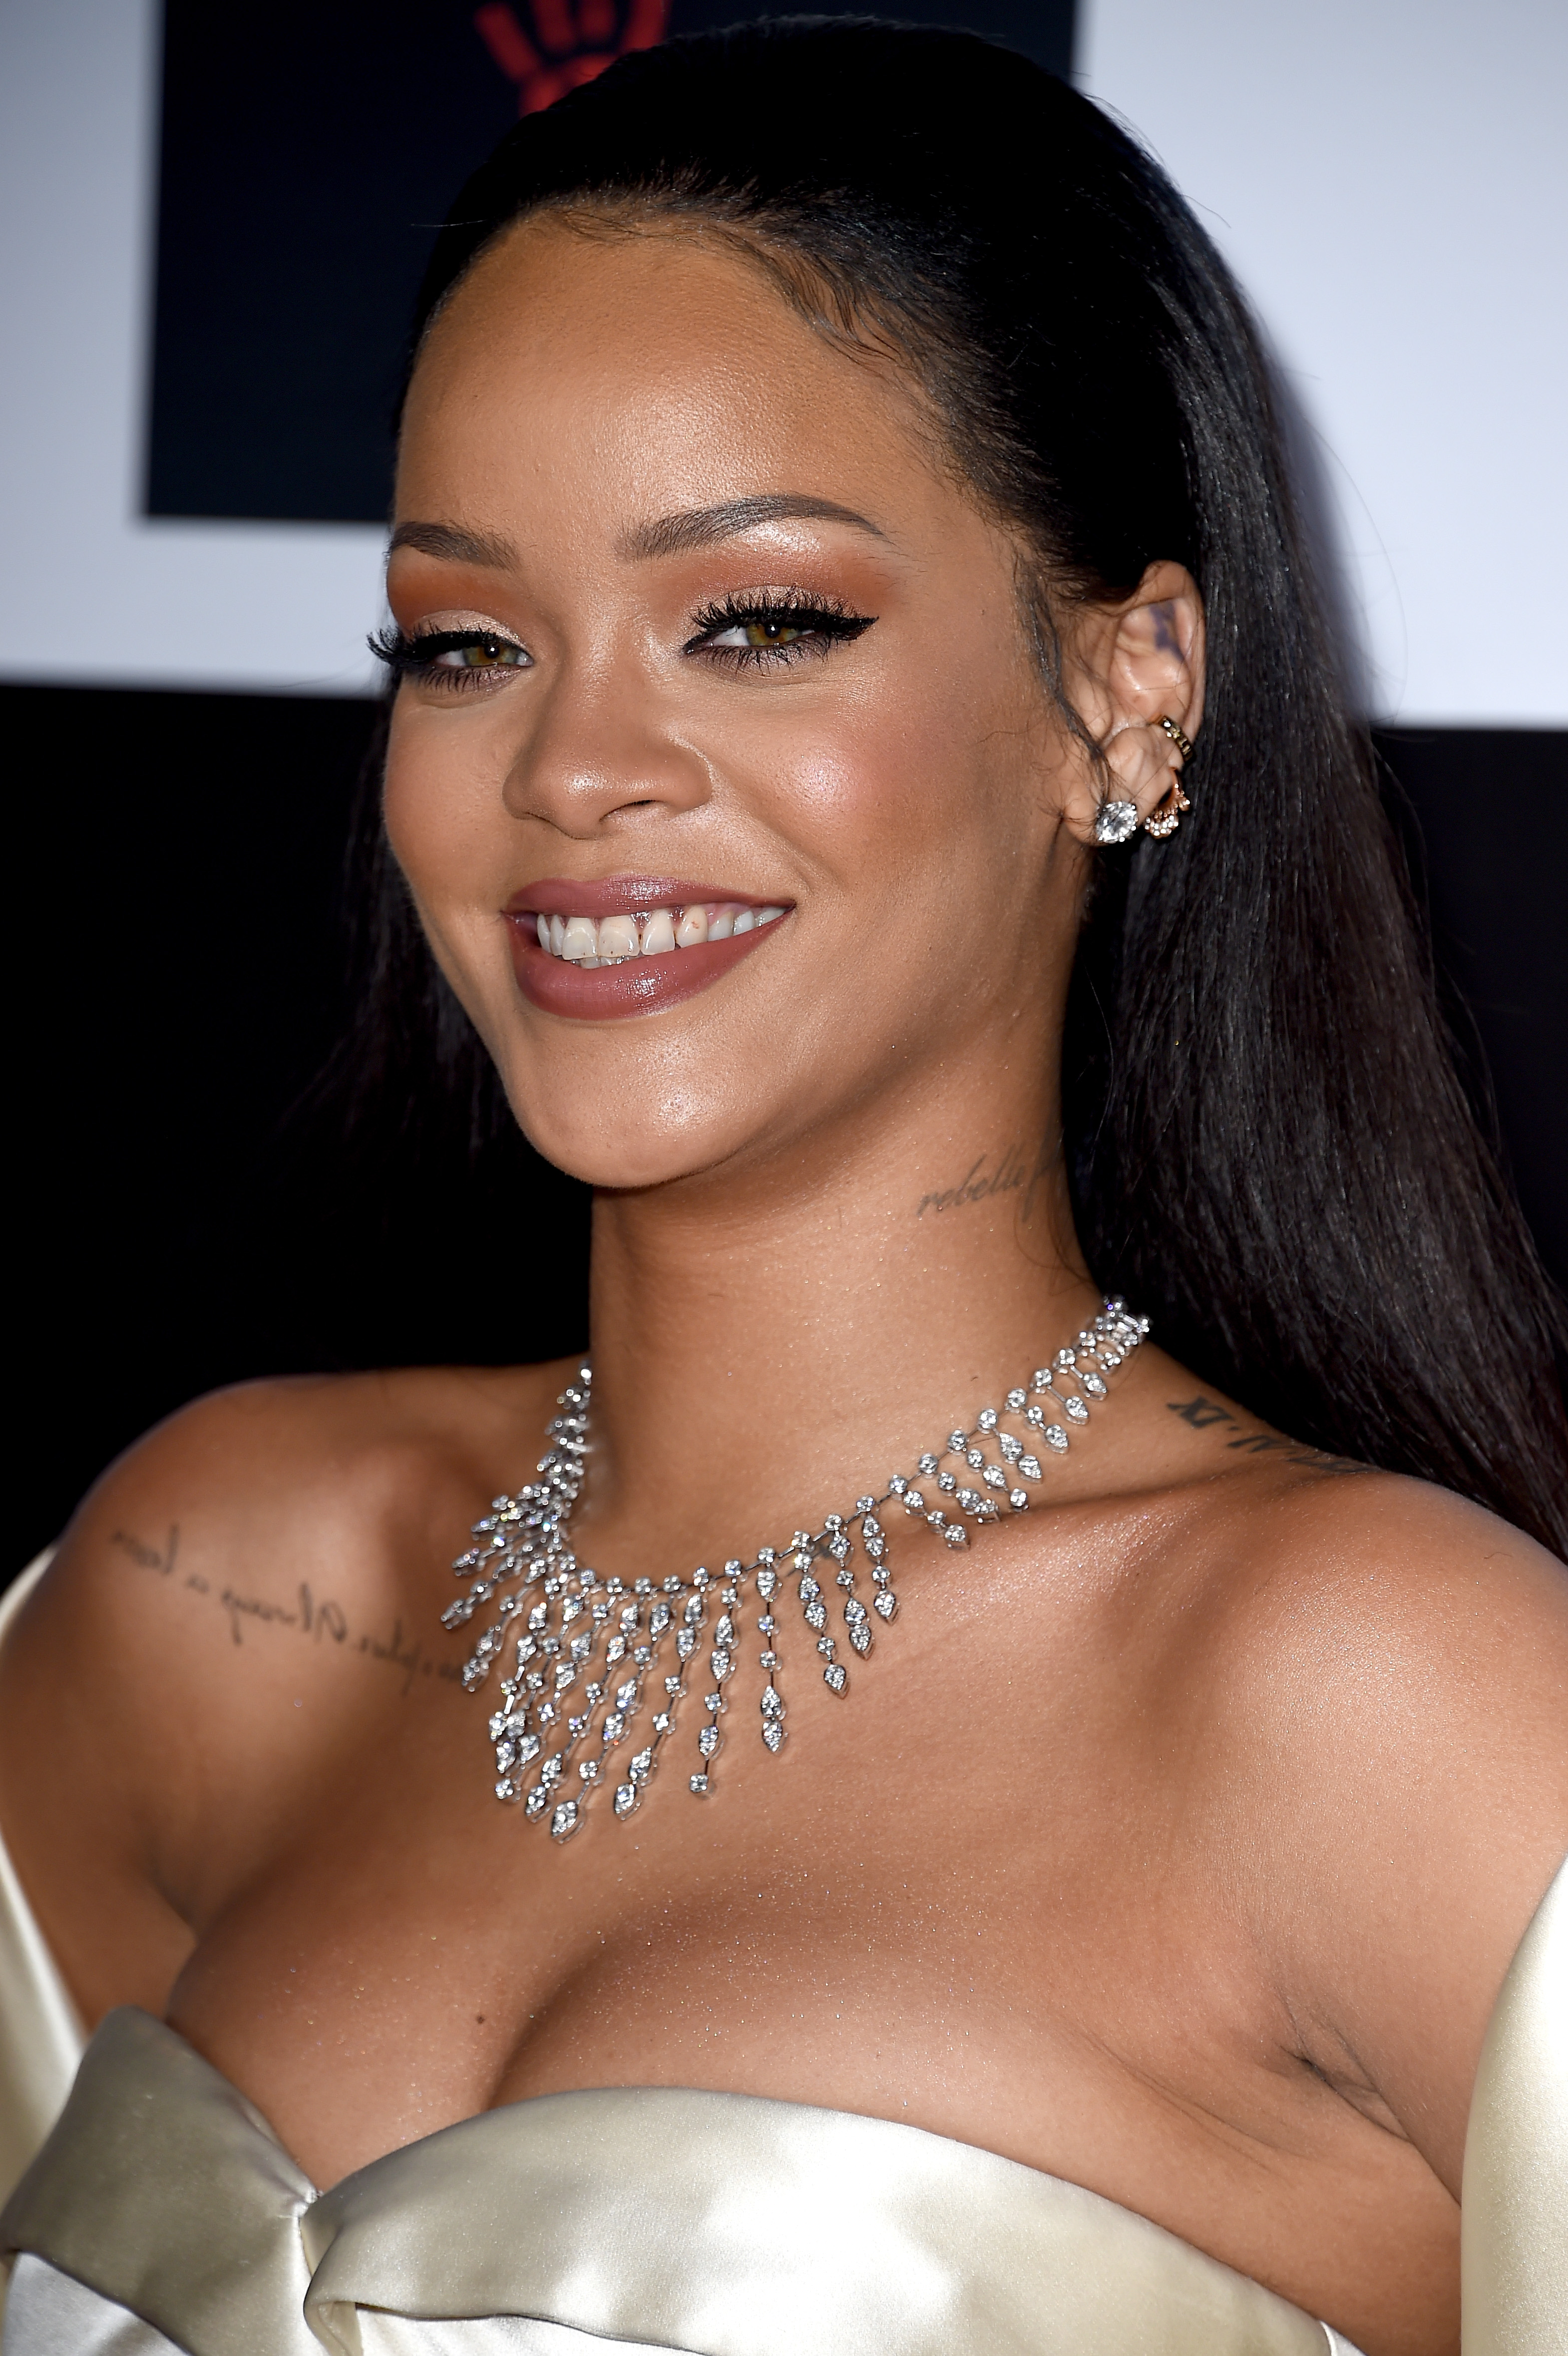 Rihanna at the 2nd Annual Diamond Ball hosted by Rihanna and The Clara Lionel Foundation in Santa Monica, Calif. on Dec. 10, 2015.